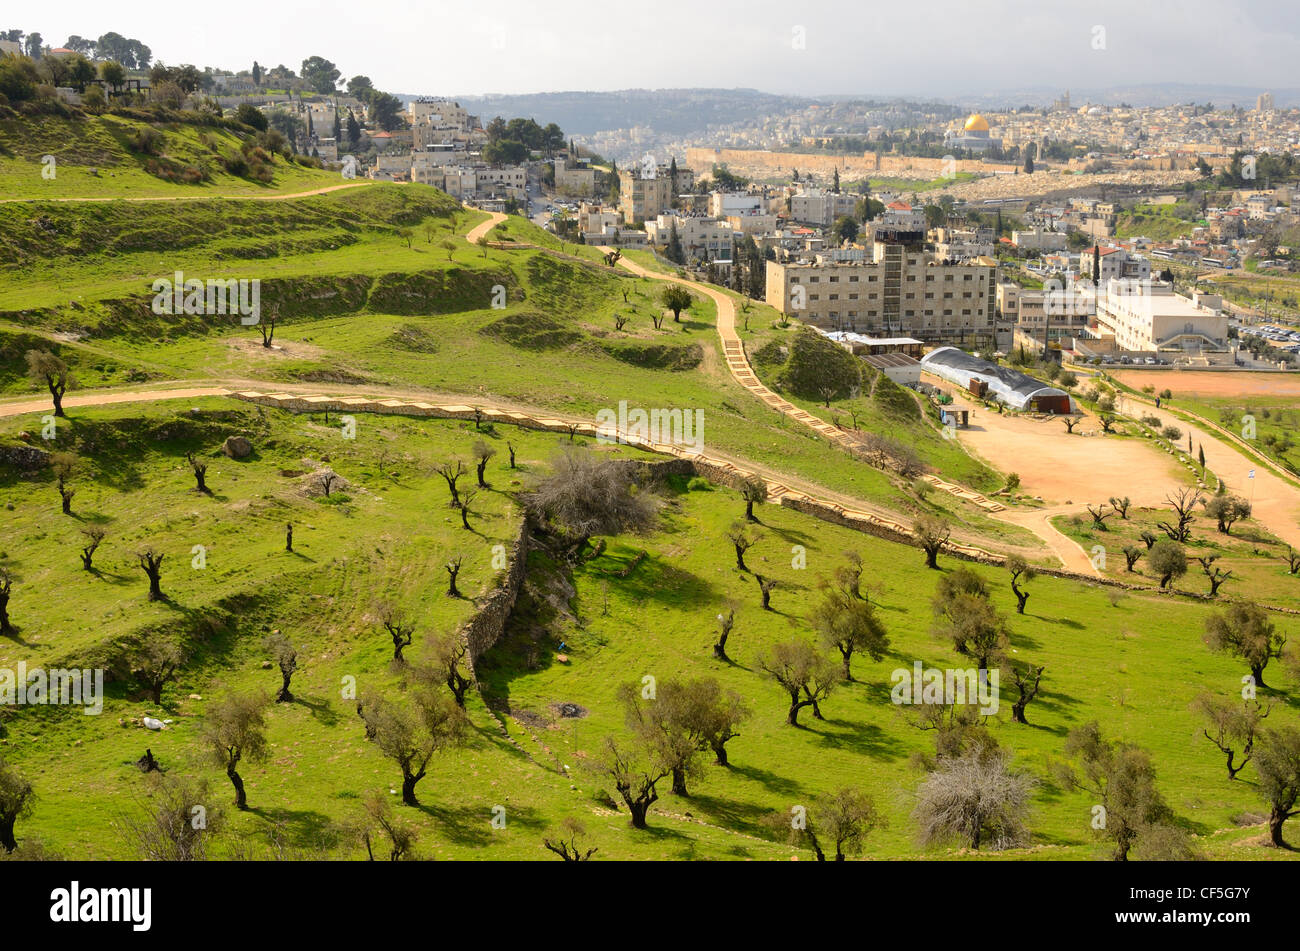 Hillside covered with olive trees in Jerusalem, Israel. Stock Photo